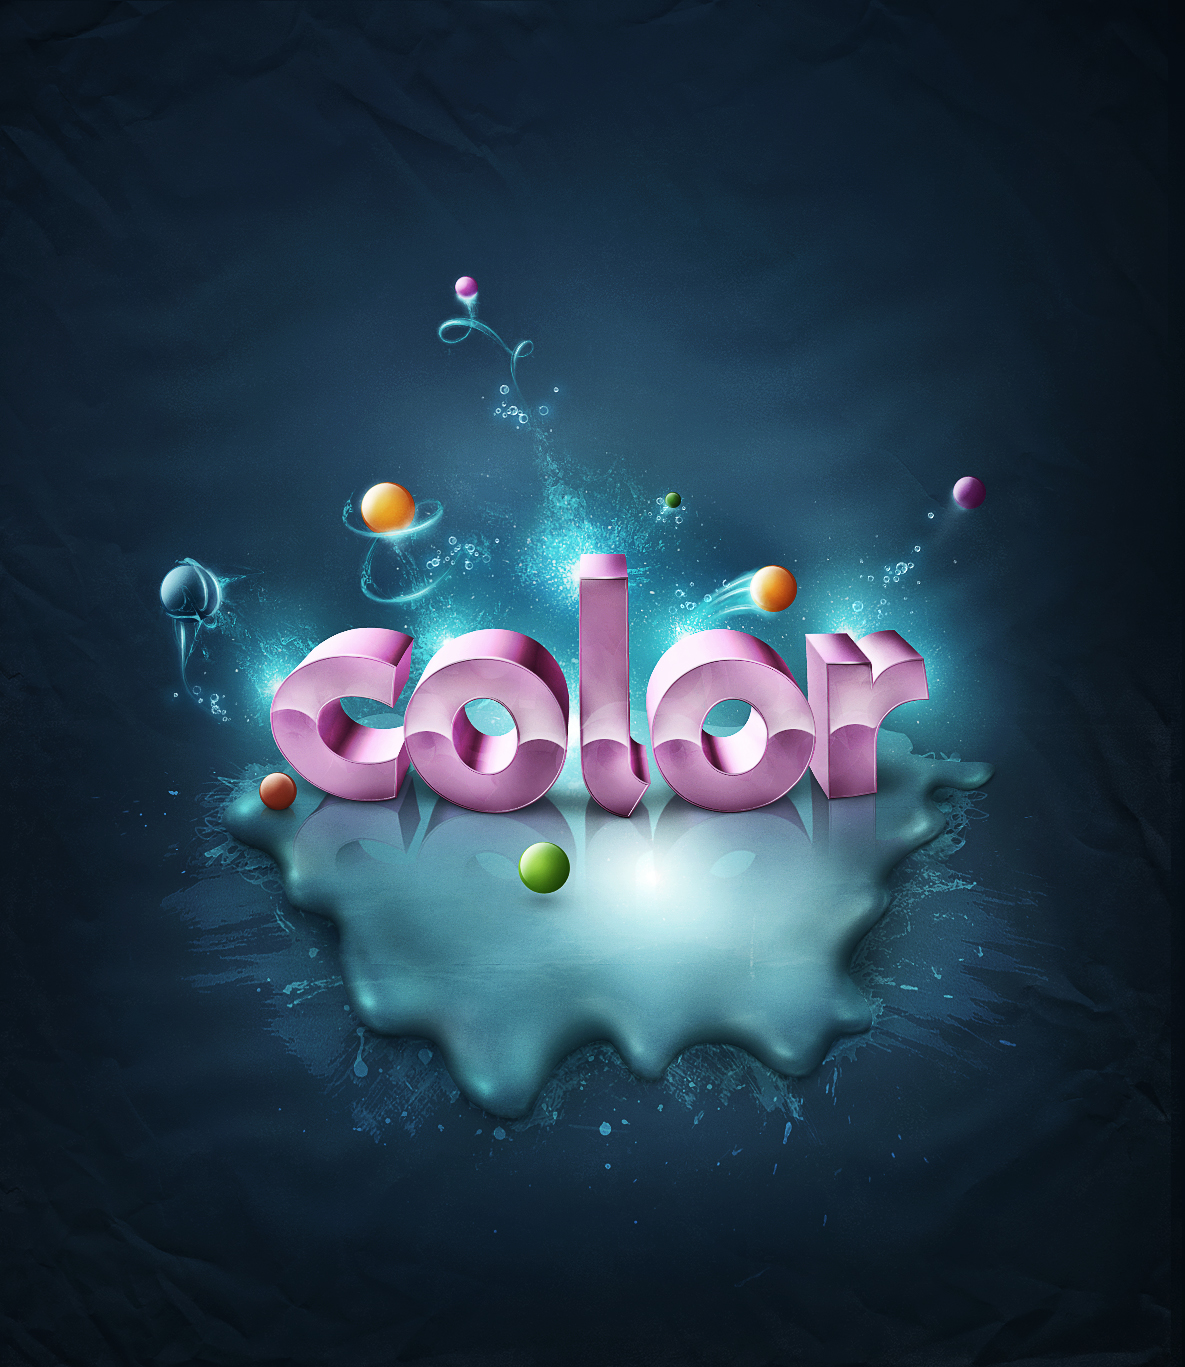 3D Text Effect Tutorials Photoshop